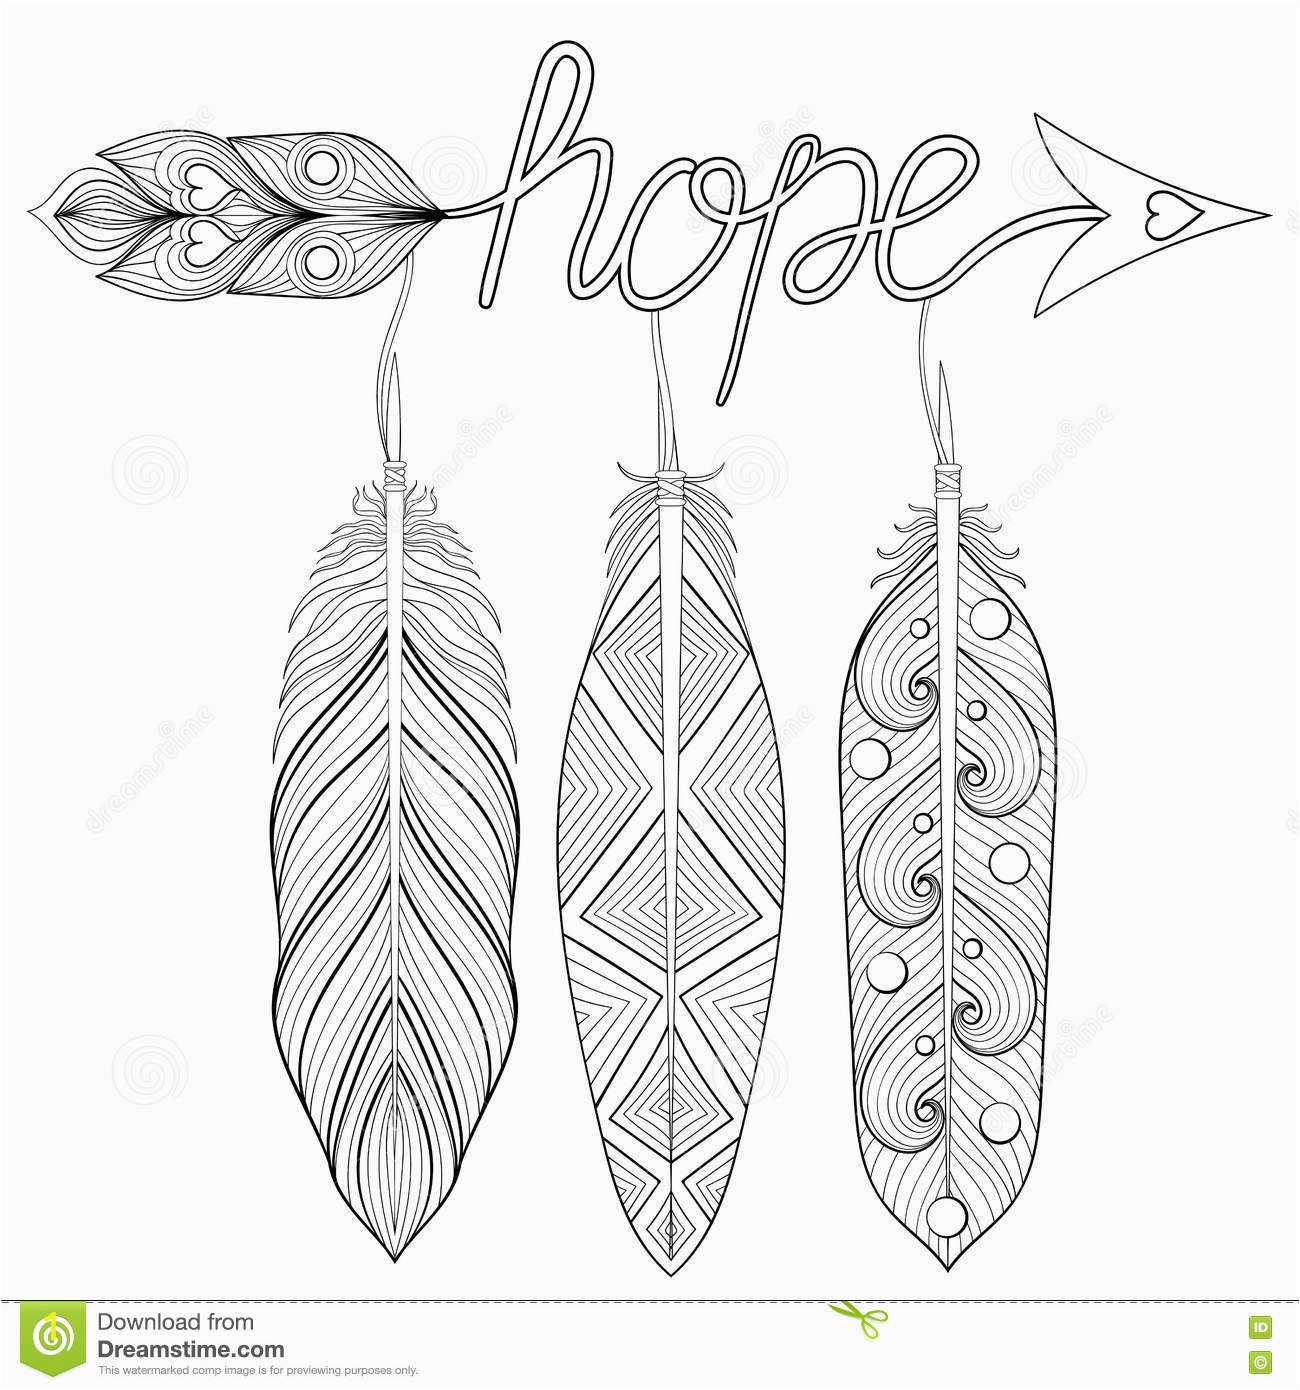 stock illustration bohemian arrow hand drawn amulet letters hope feathe feather decorative arrows adult coloring pages ethnic patterned image